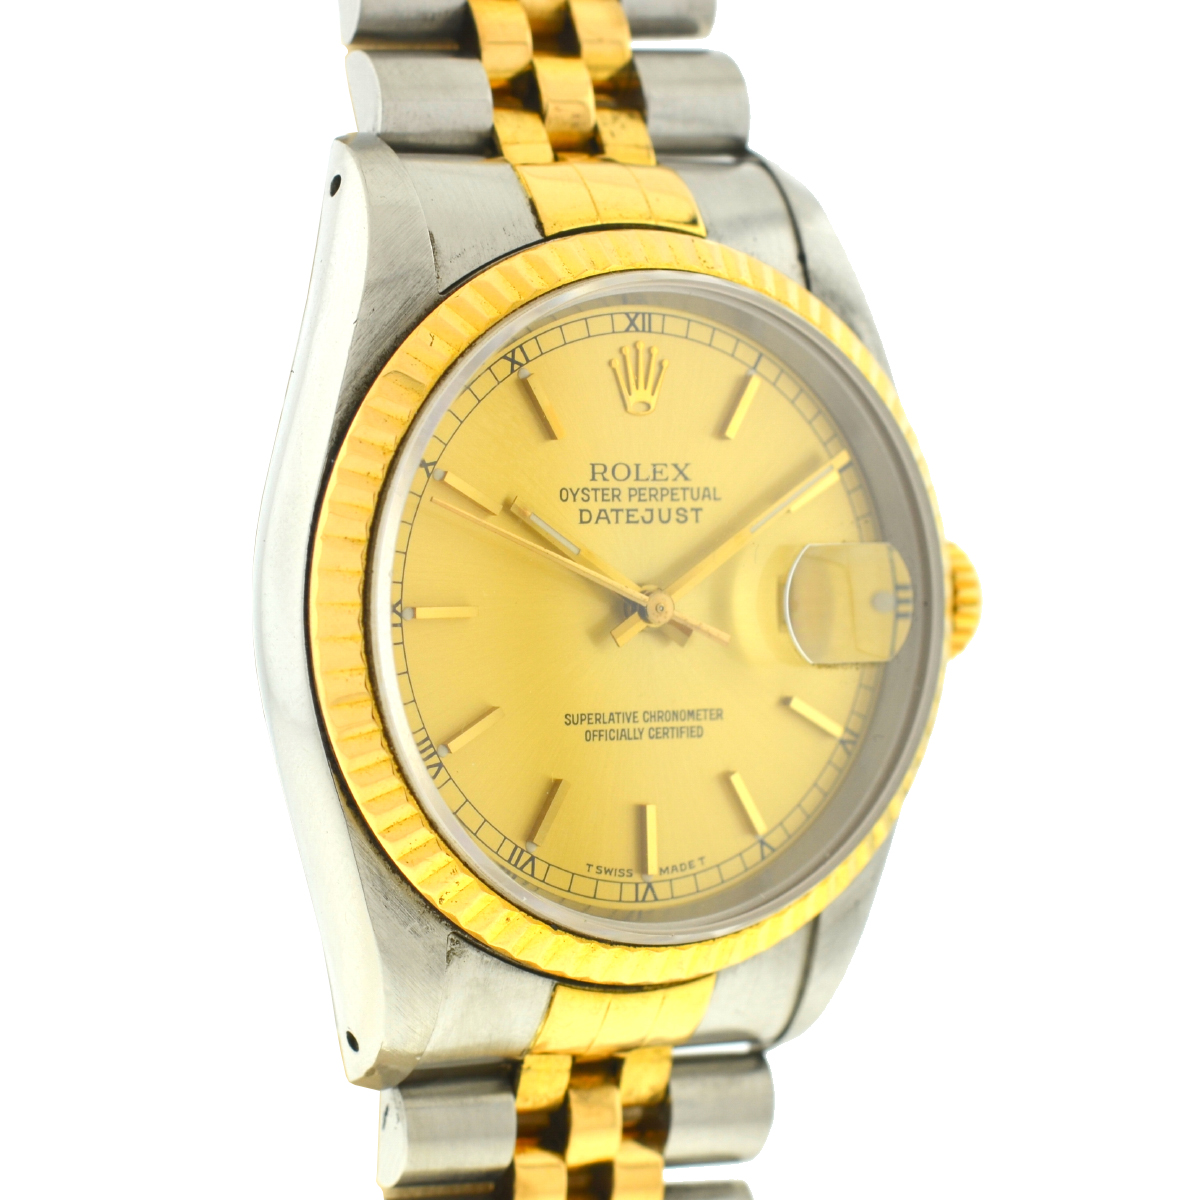 Rolex 16233 Datejust Two Tone Champagne Dial 36mm Automatic Watch